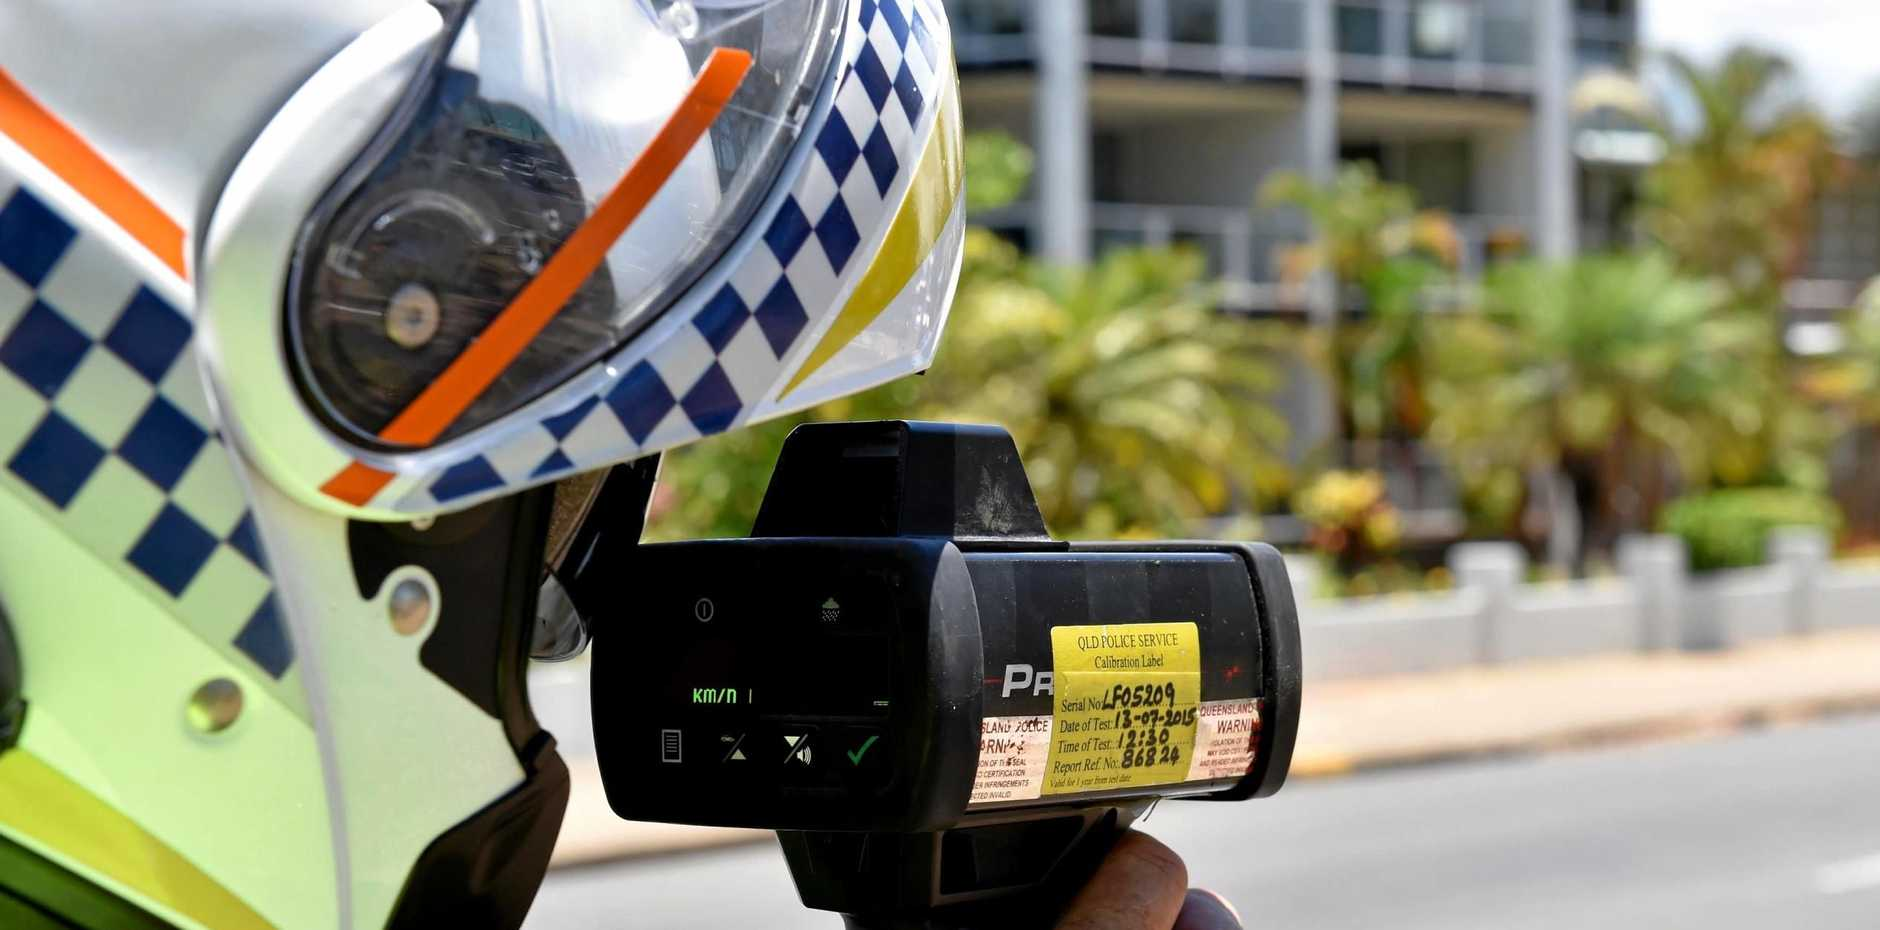 FESTIVE BREAK: Lockyer Valley motorists were said to have behaved excellently on the roads.